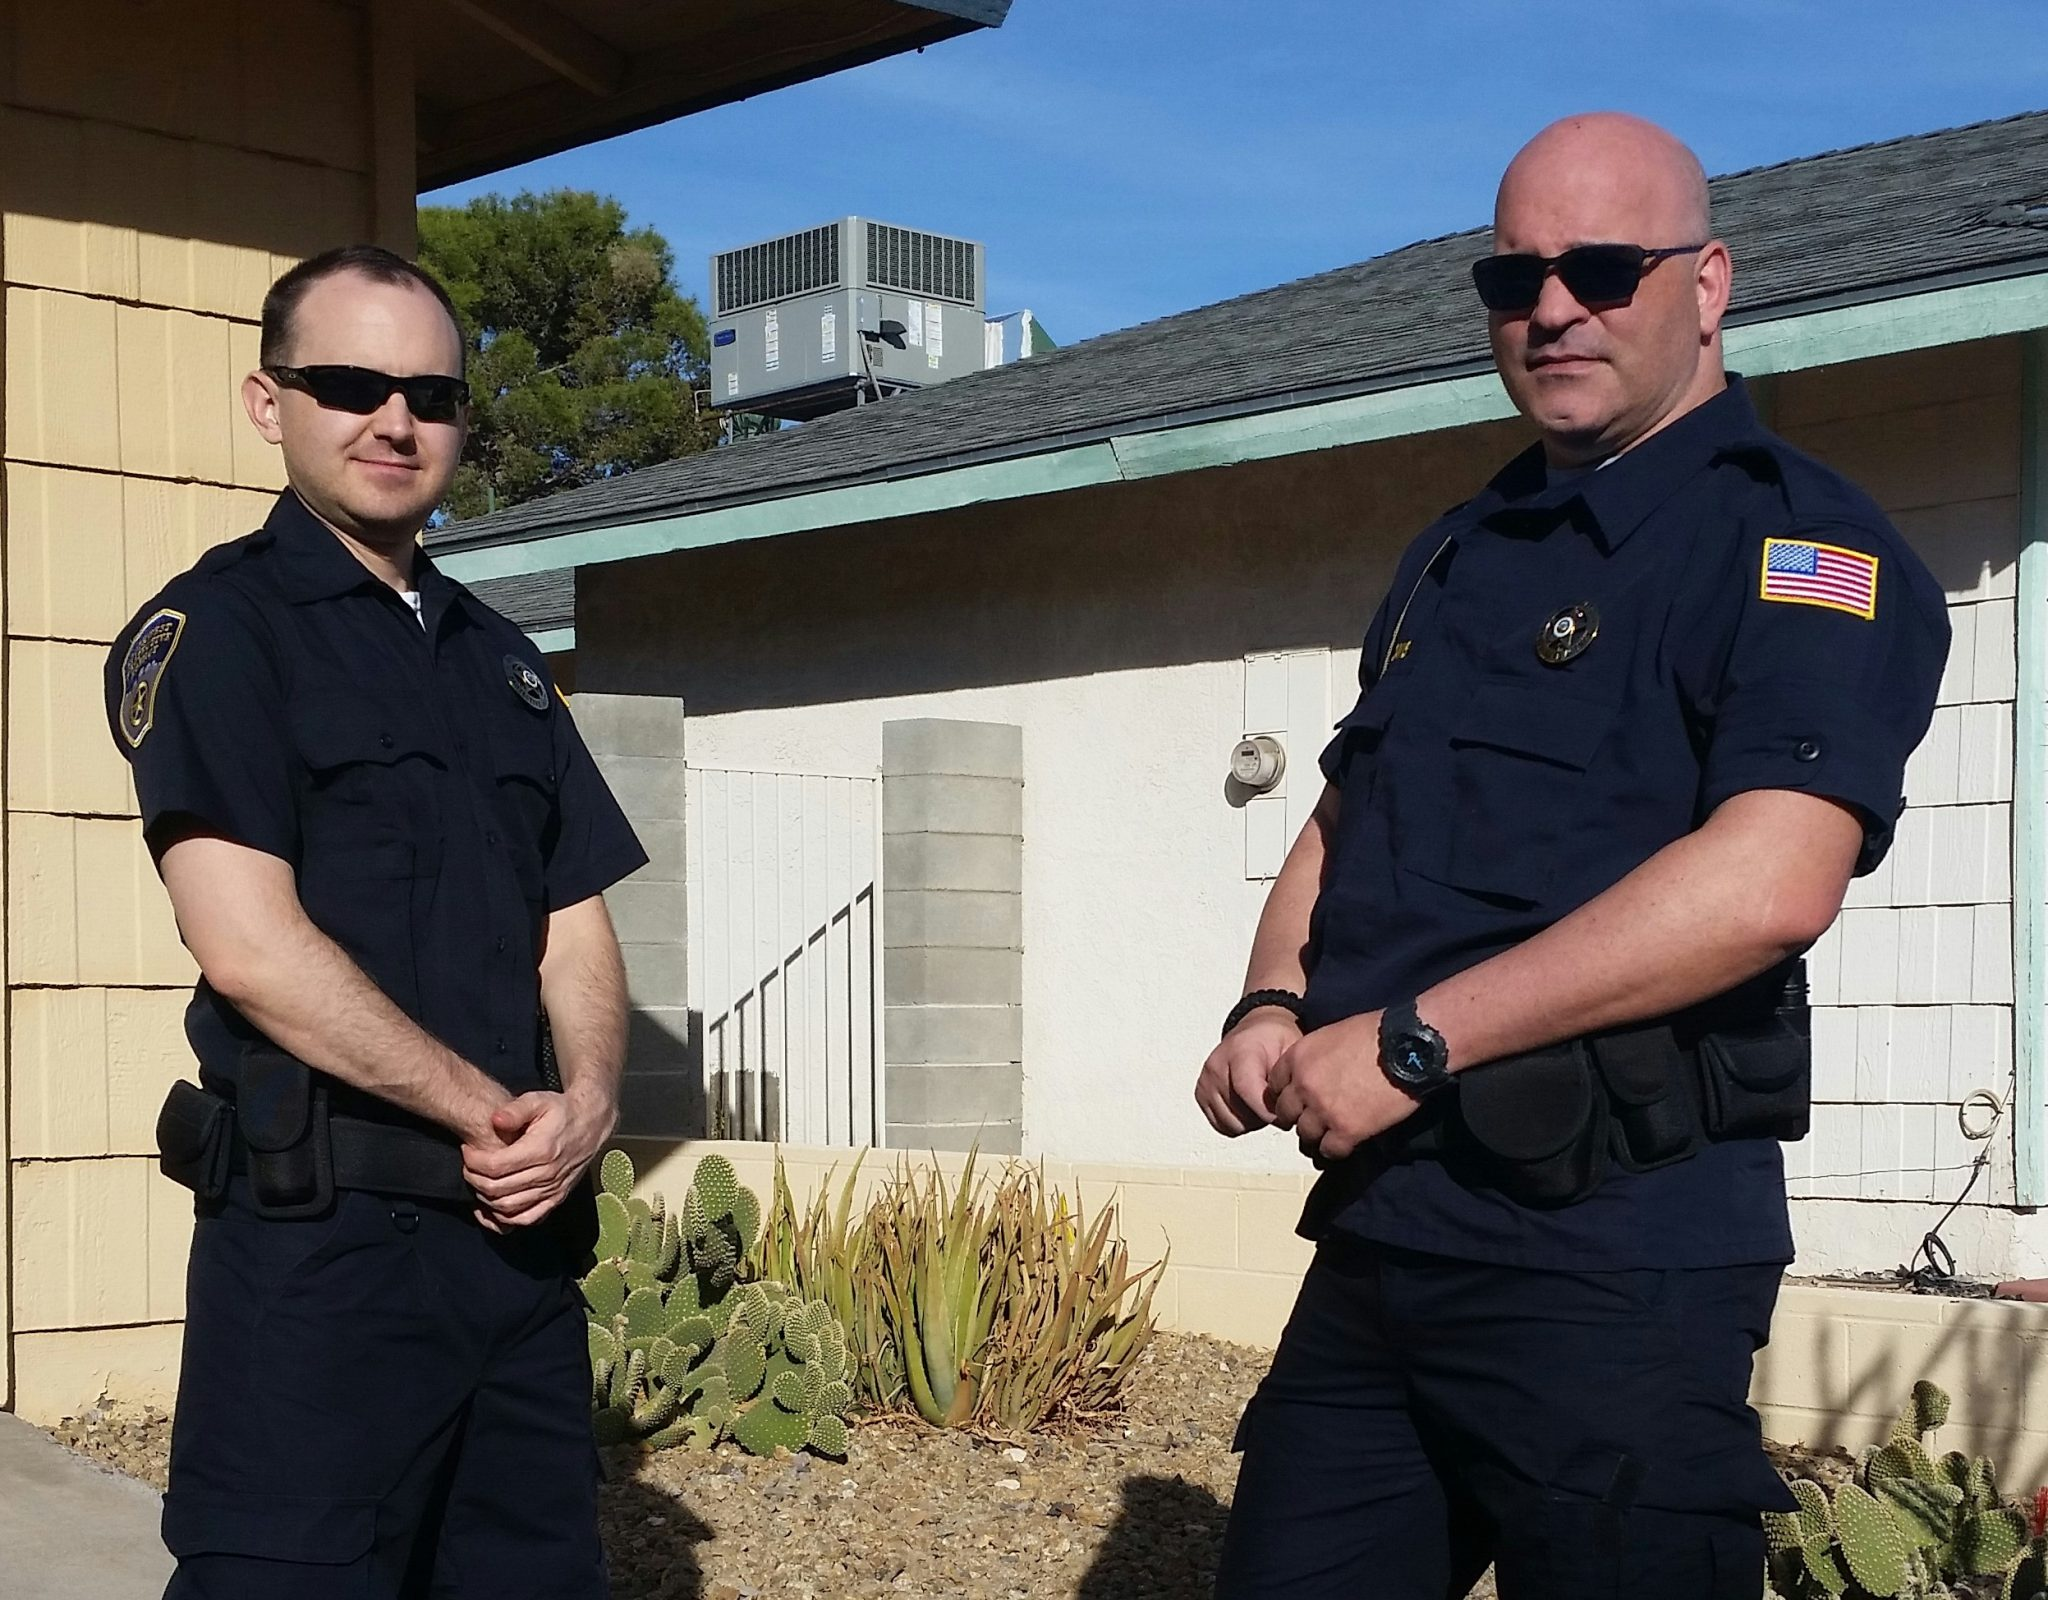 Southwest Protective Officers